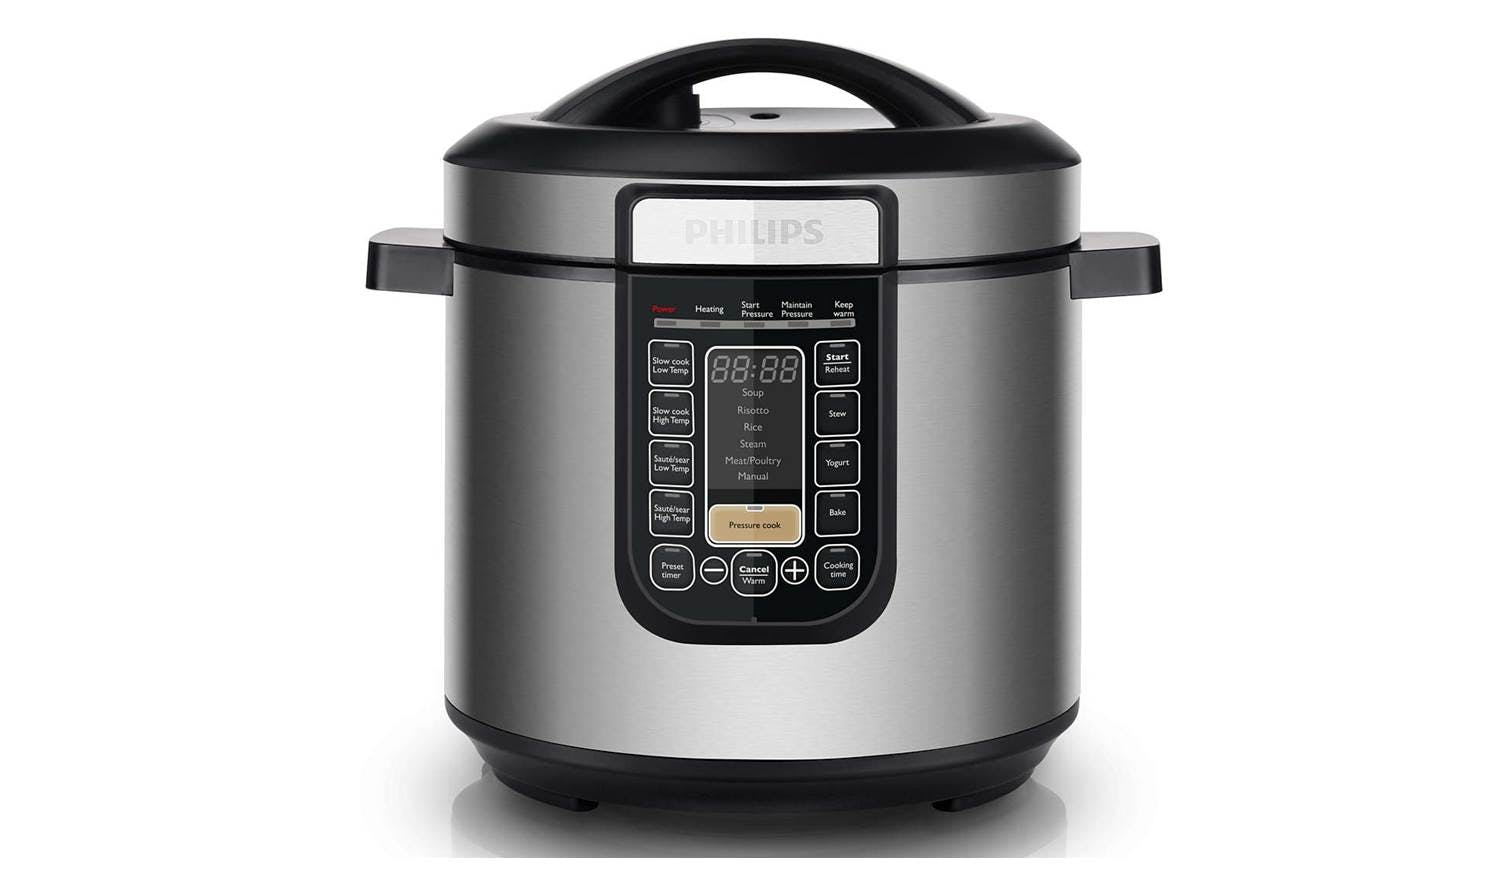 All In One Kitchen Appliance.Philips Hd 2137 62 All In One Pressure Cooker Harvey Norman Singapore